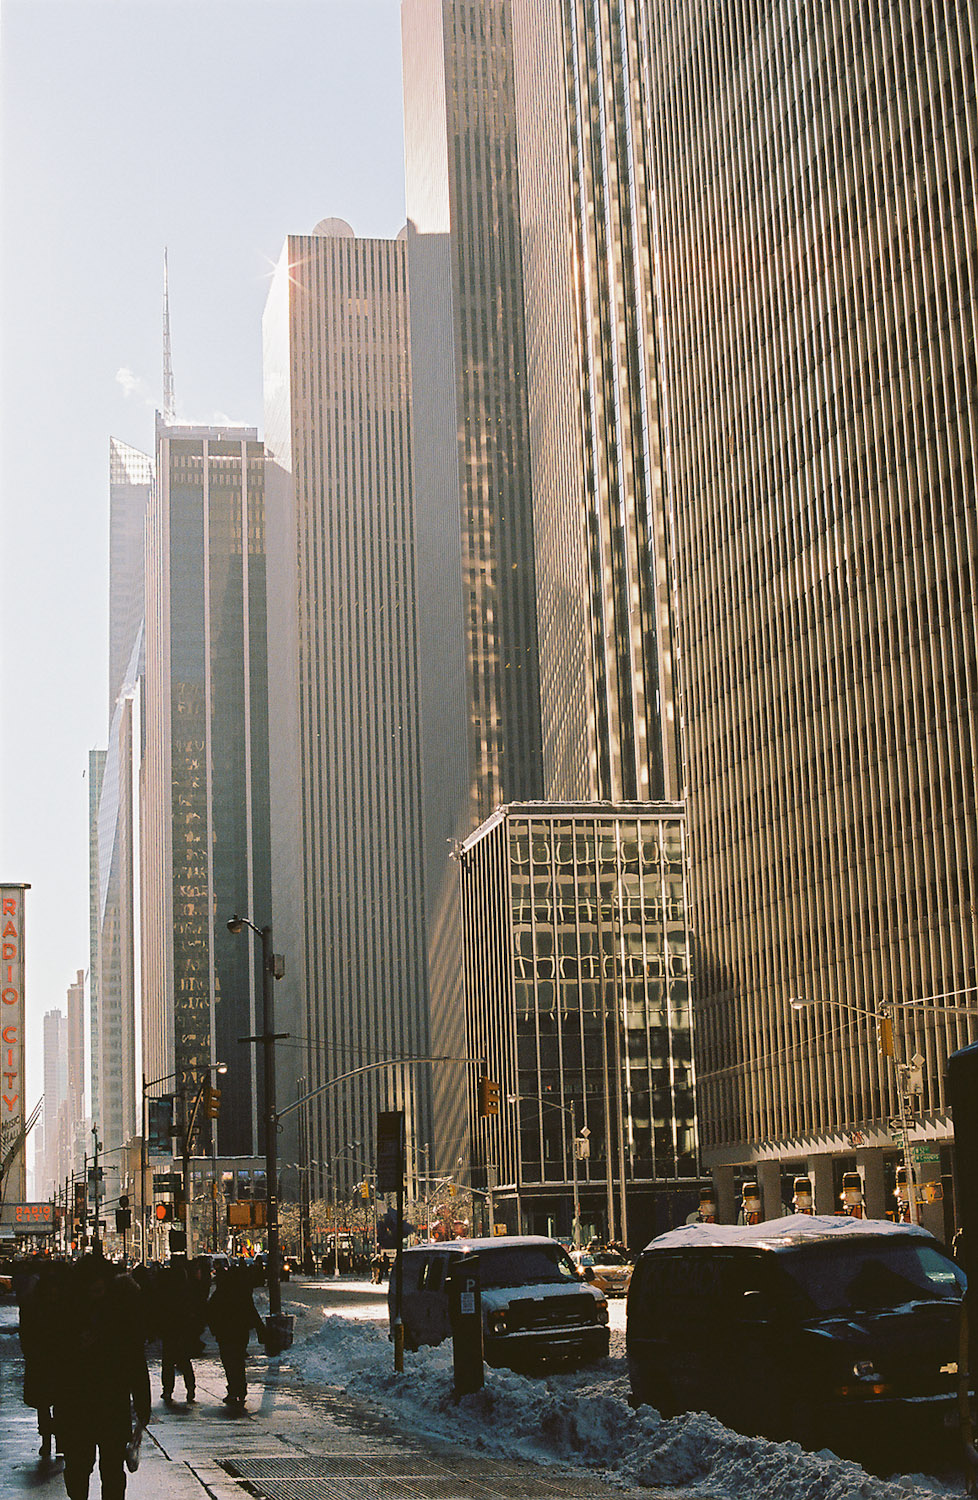 6th Ave, Midtown Manhattan